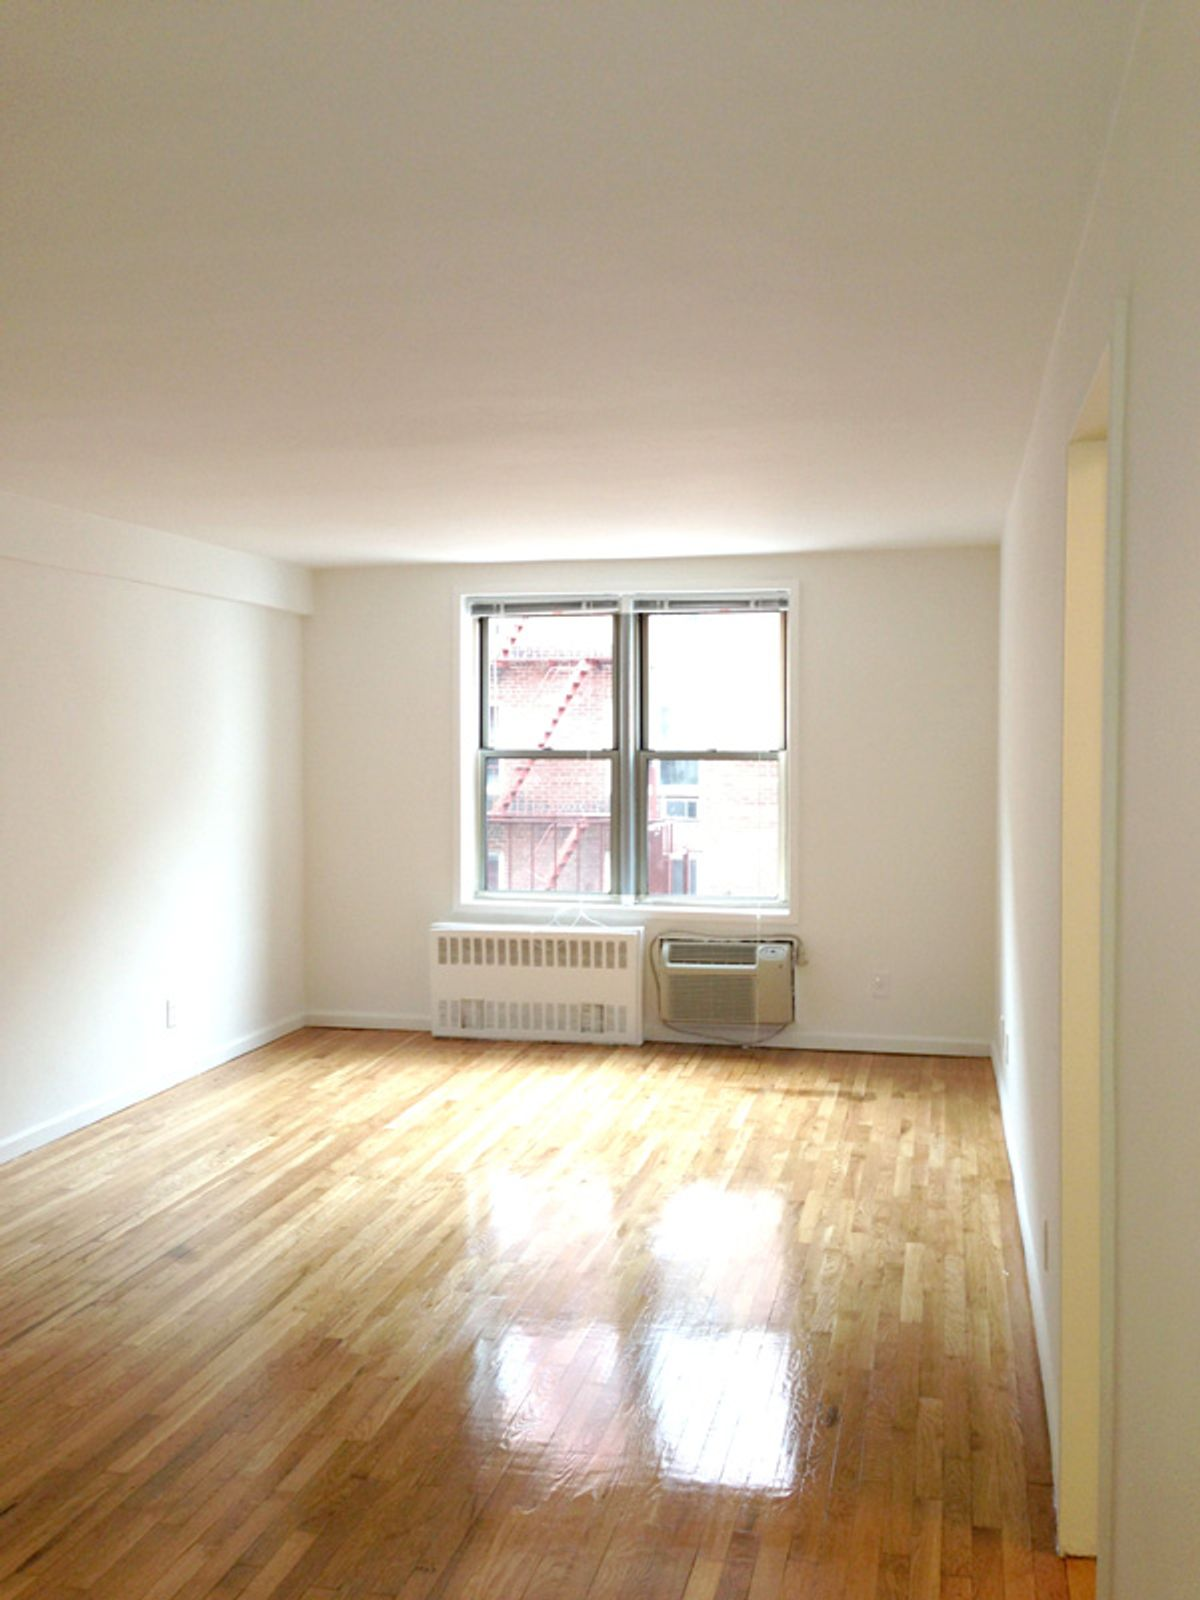 Village Studio with Indoor Parking Space, New York NY Cooperative - New York City Real Estate